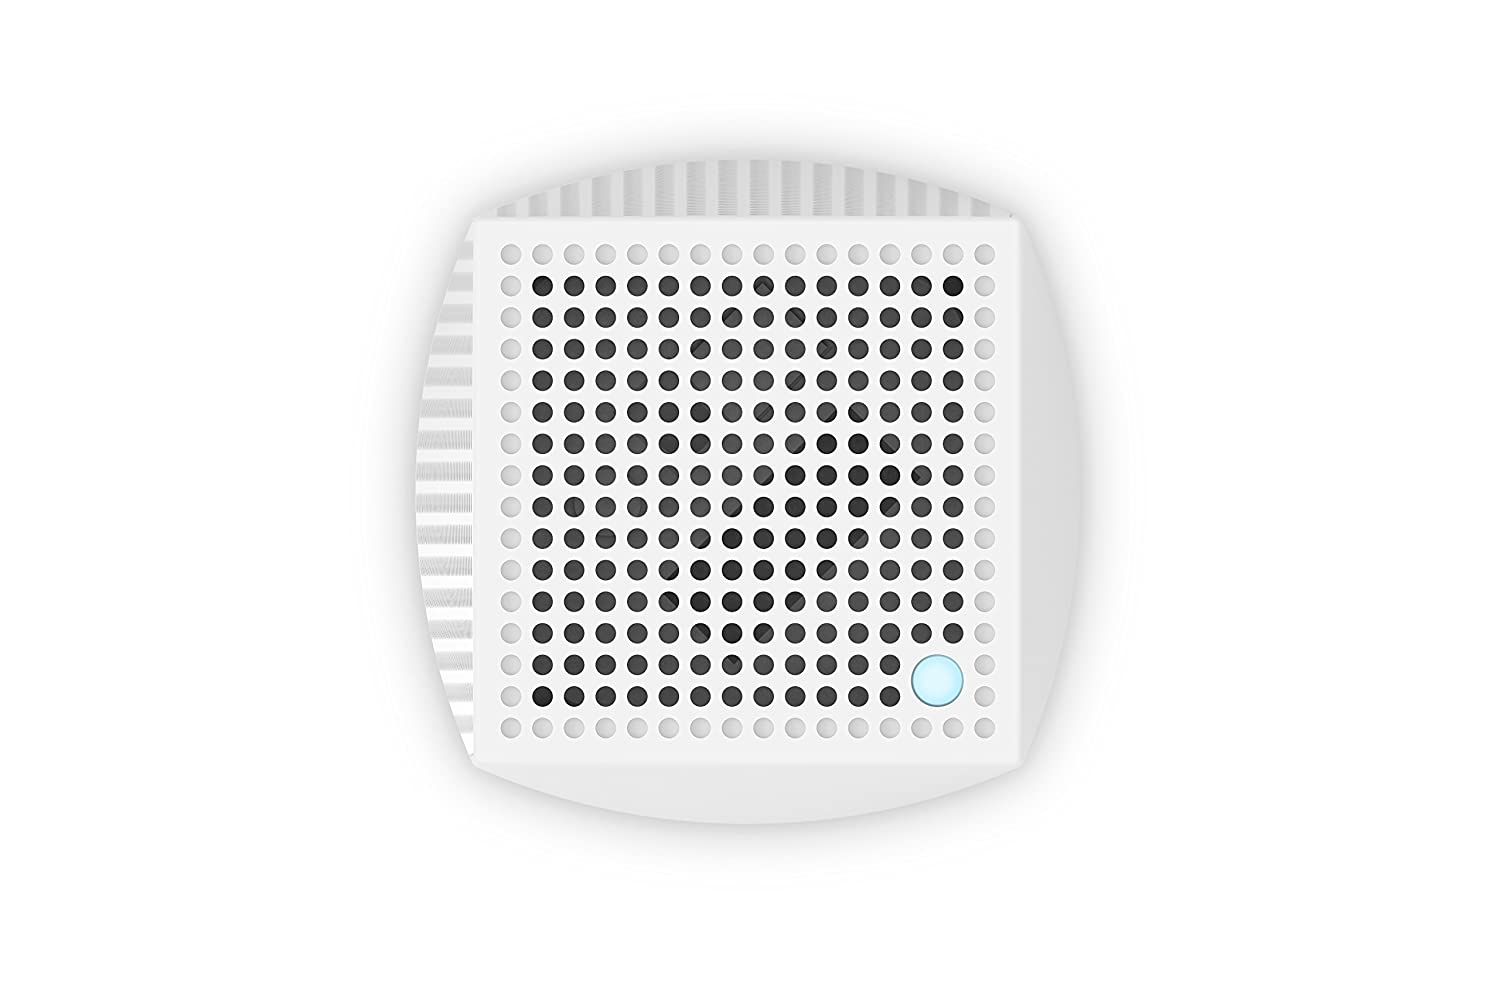 coverage up to 6000 sq. ft Linksys Velop Tri-band AC6600 Whole Home WiFi Mesh System 3-Pack